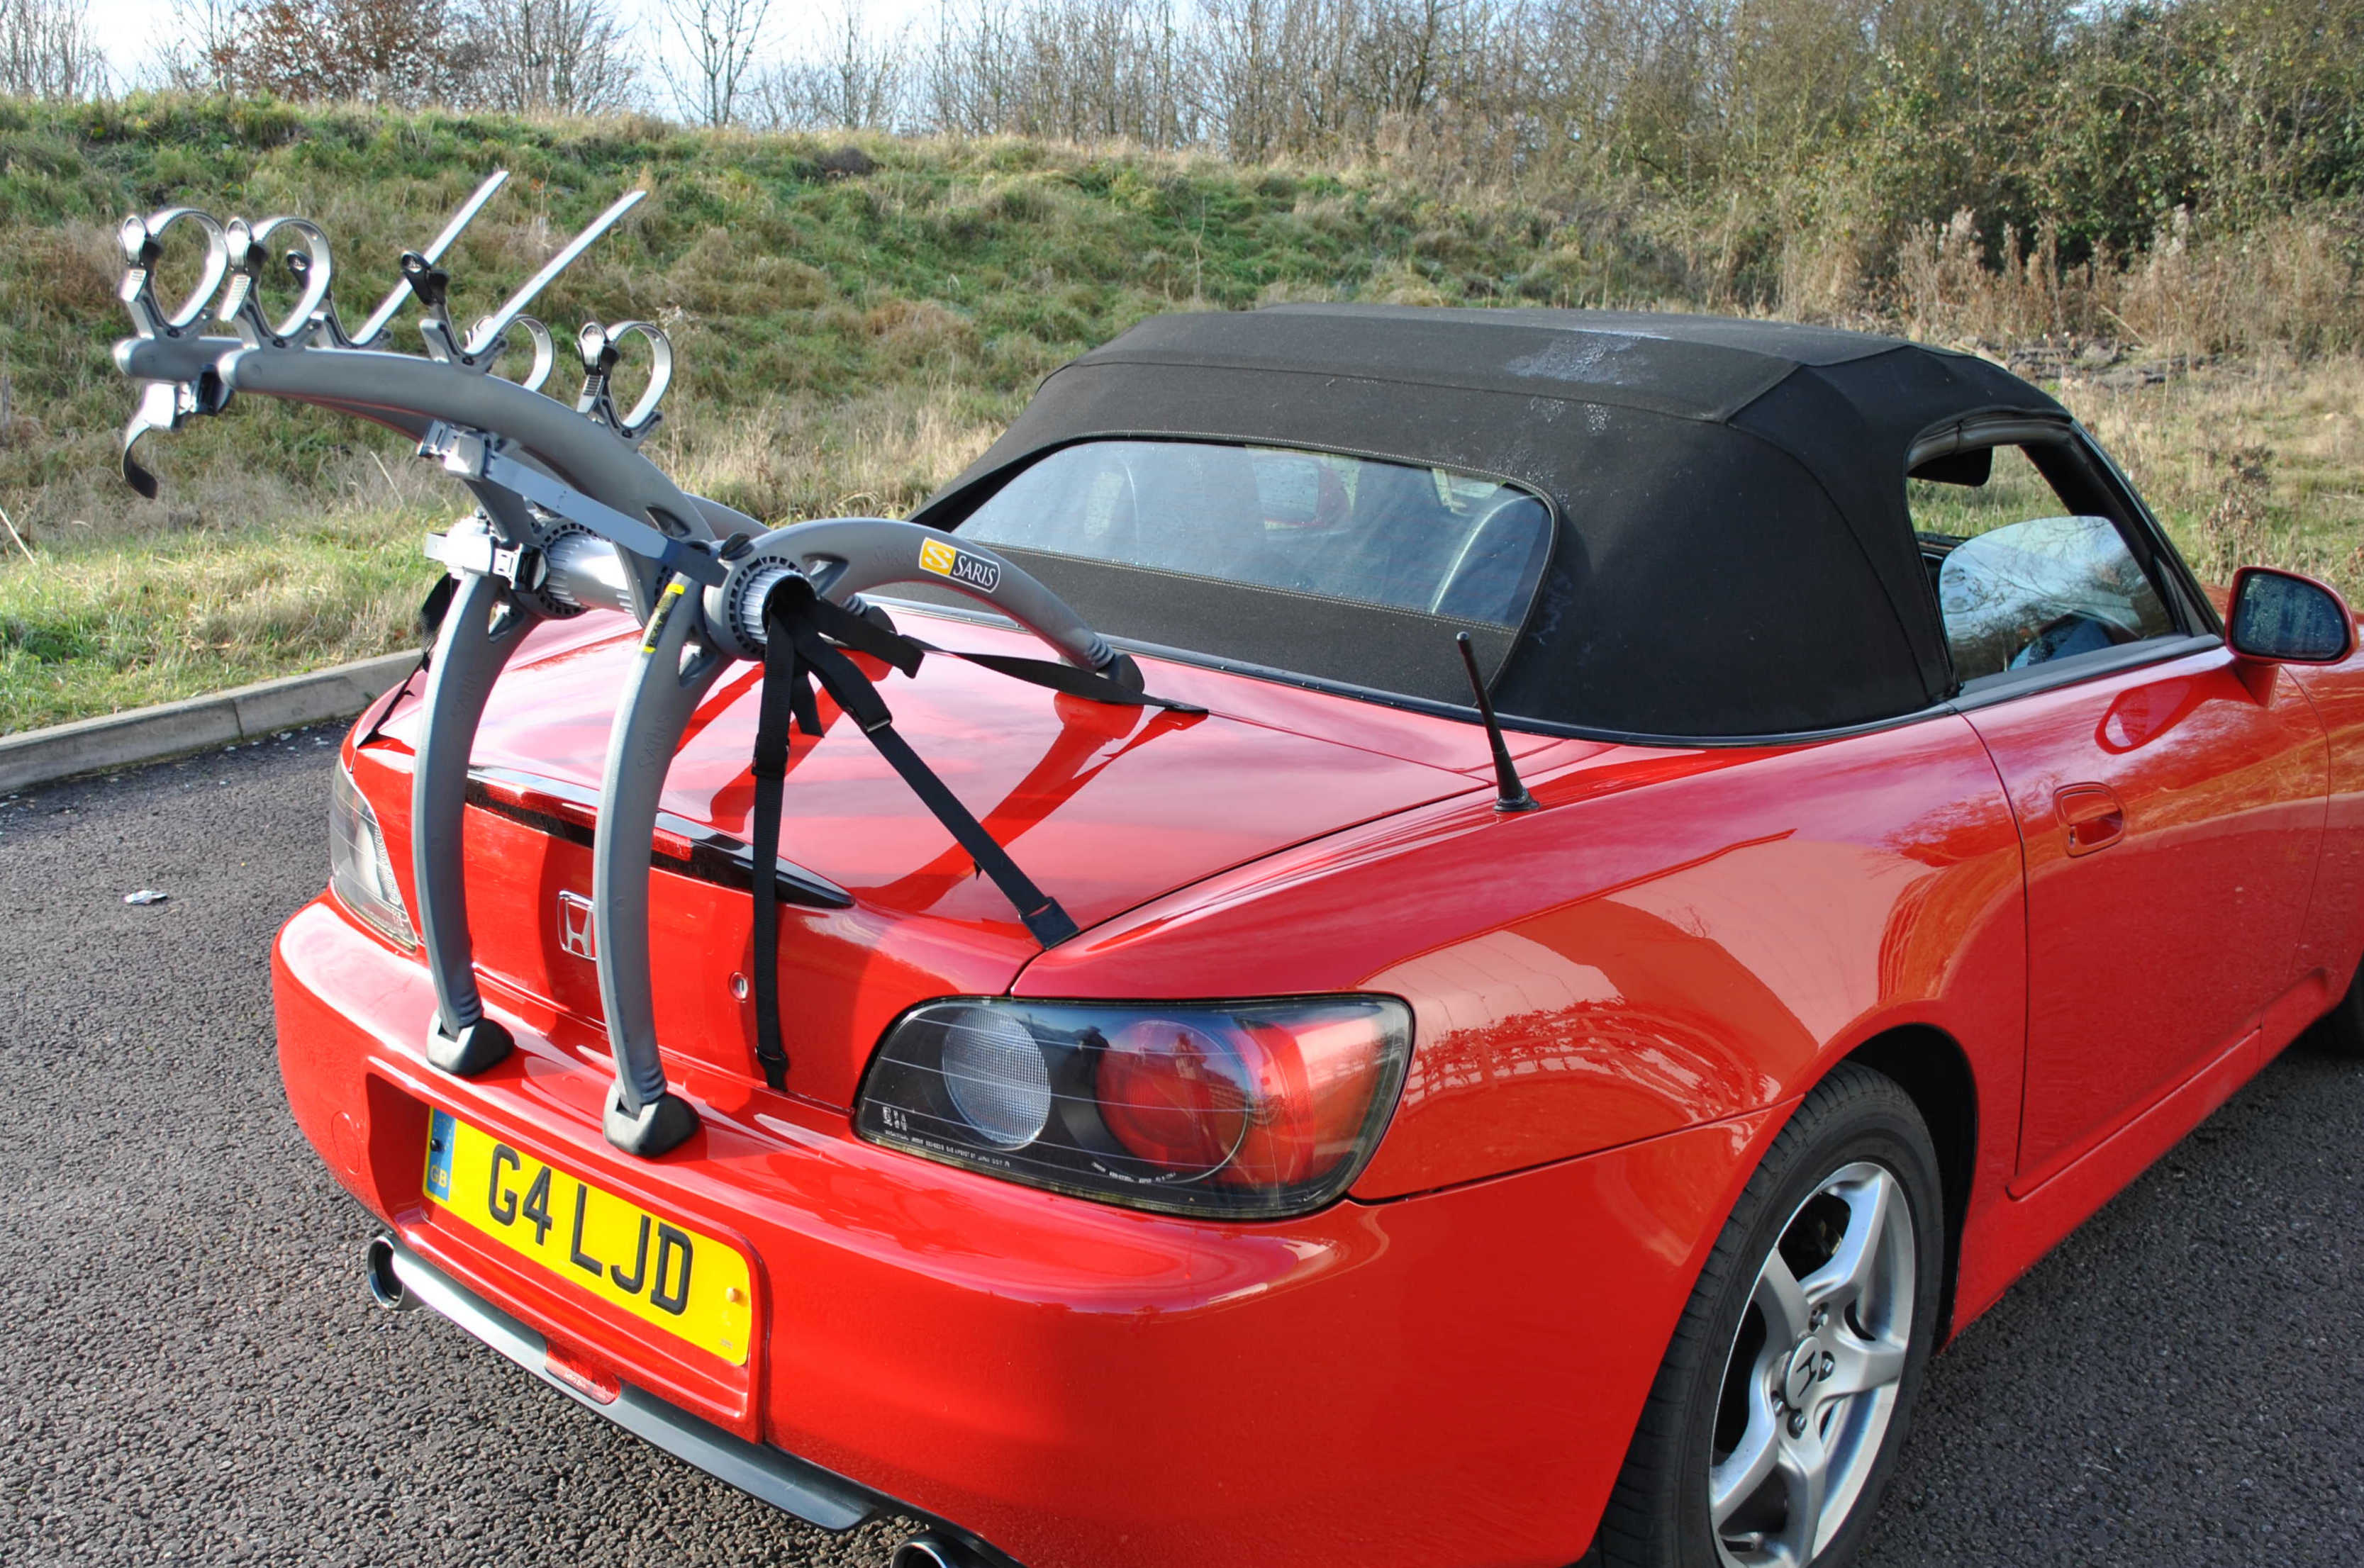 Honda S2000 Bike Rack No Bike Car Bike Racks Amp Bike Carriers